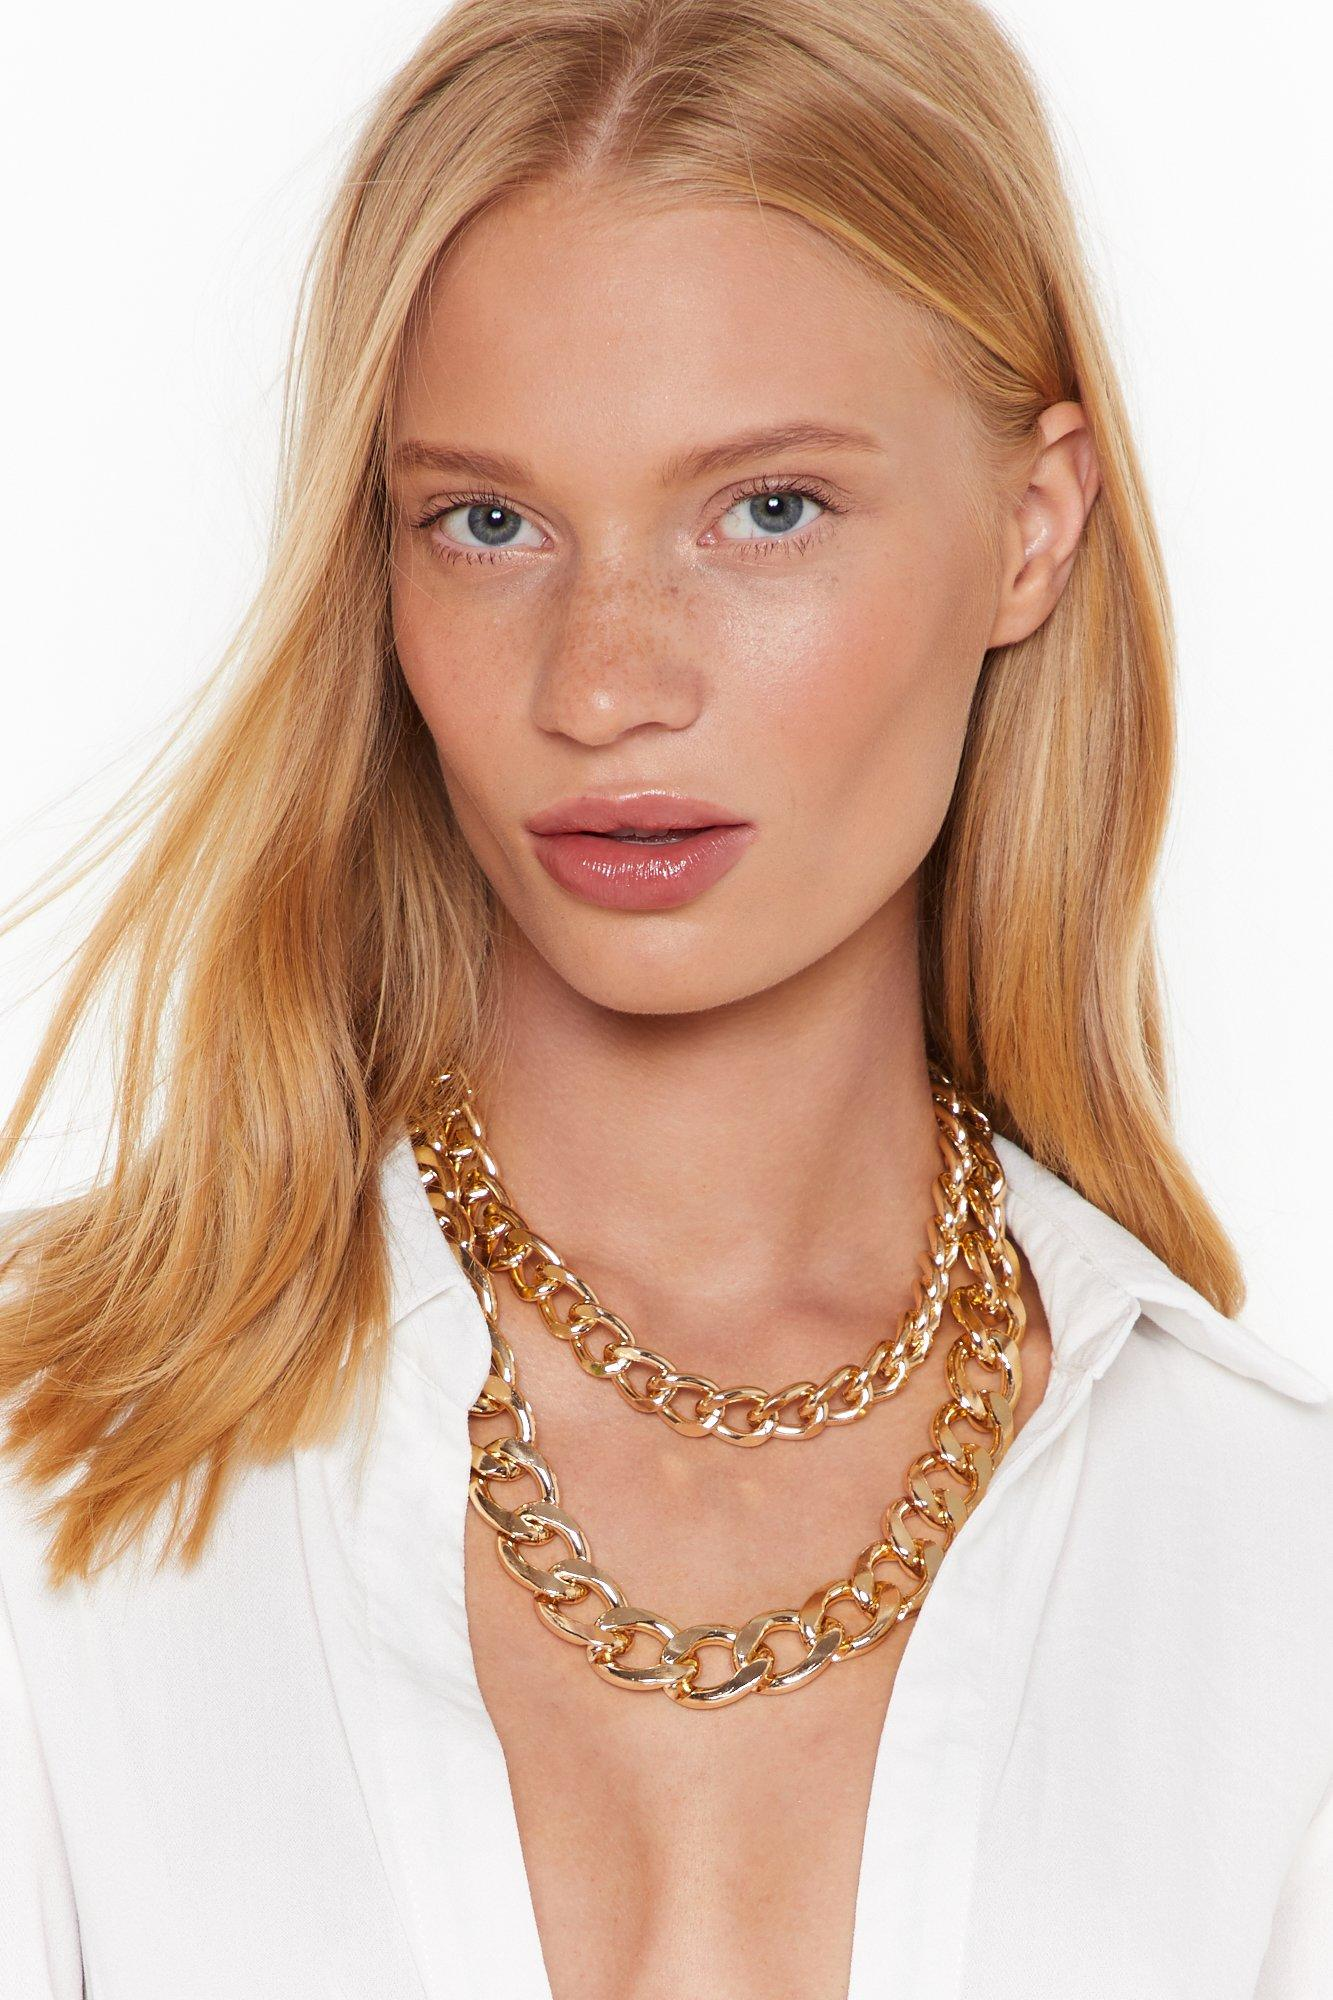 Image of Chunky and Funky Layered Chain Necklace